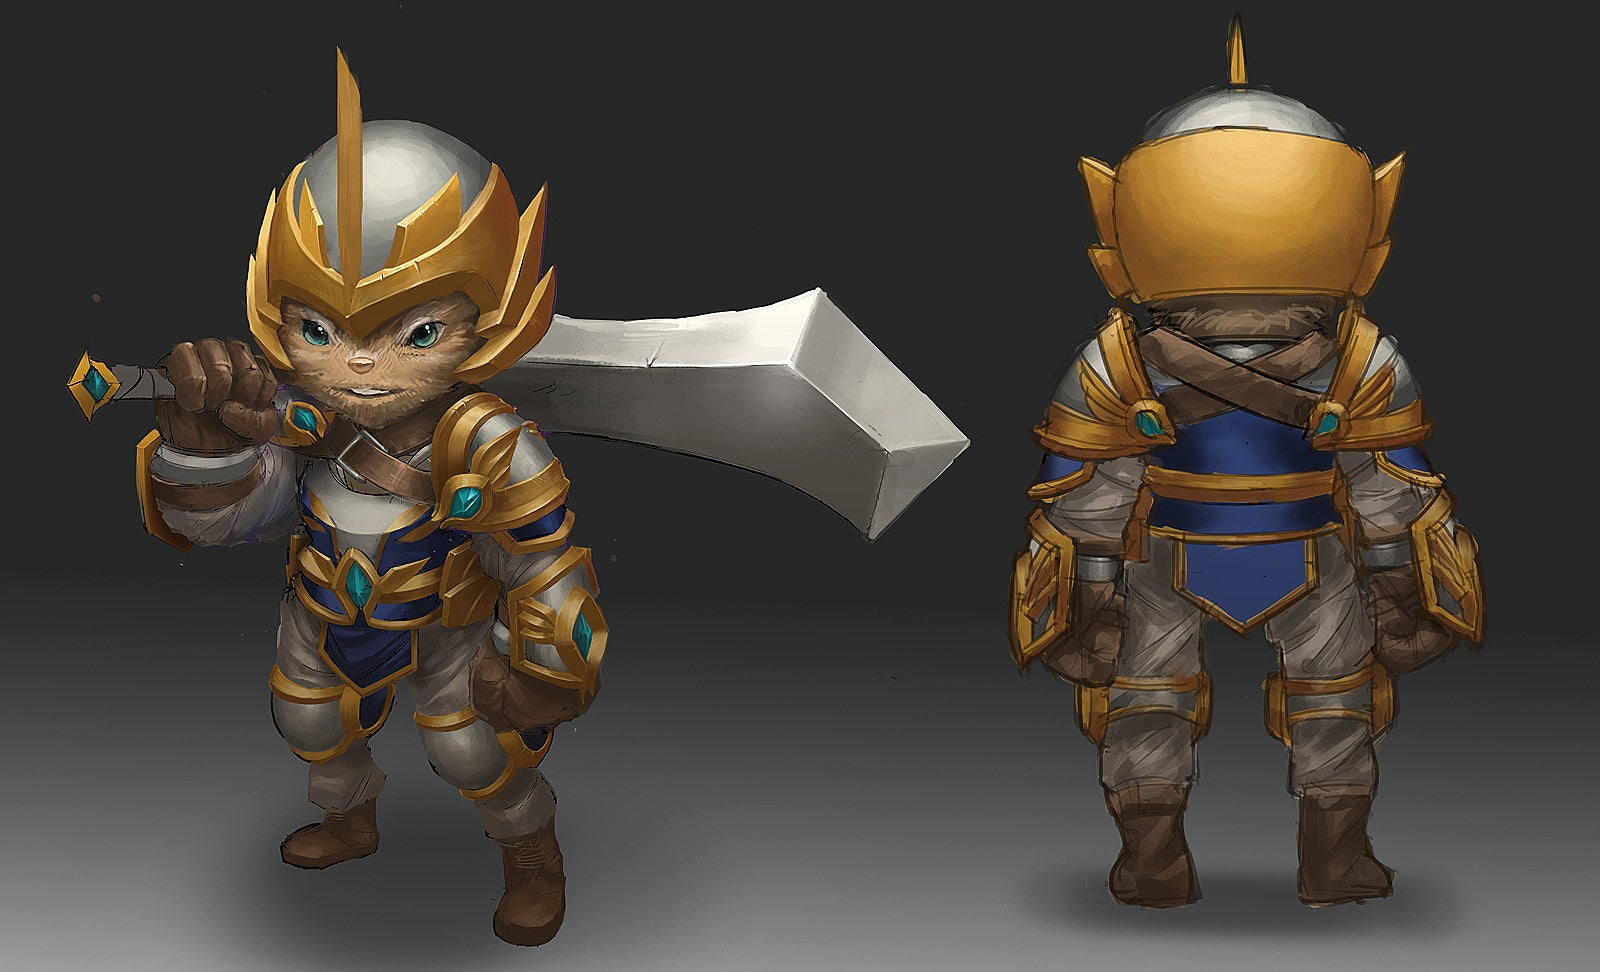 Fake League Of Legends Characters Look As Good As The Real Ones